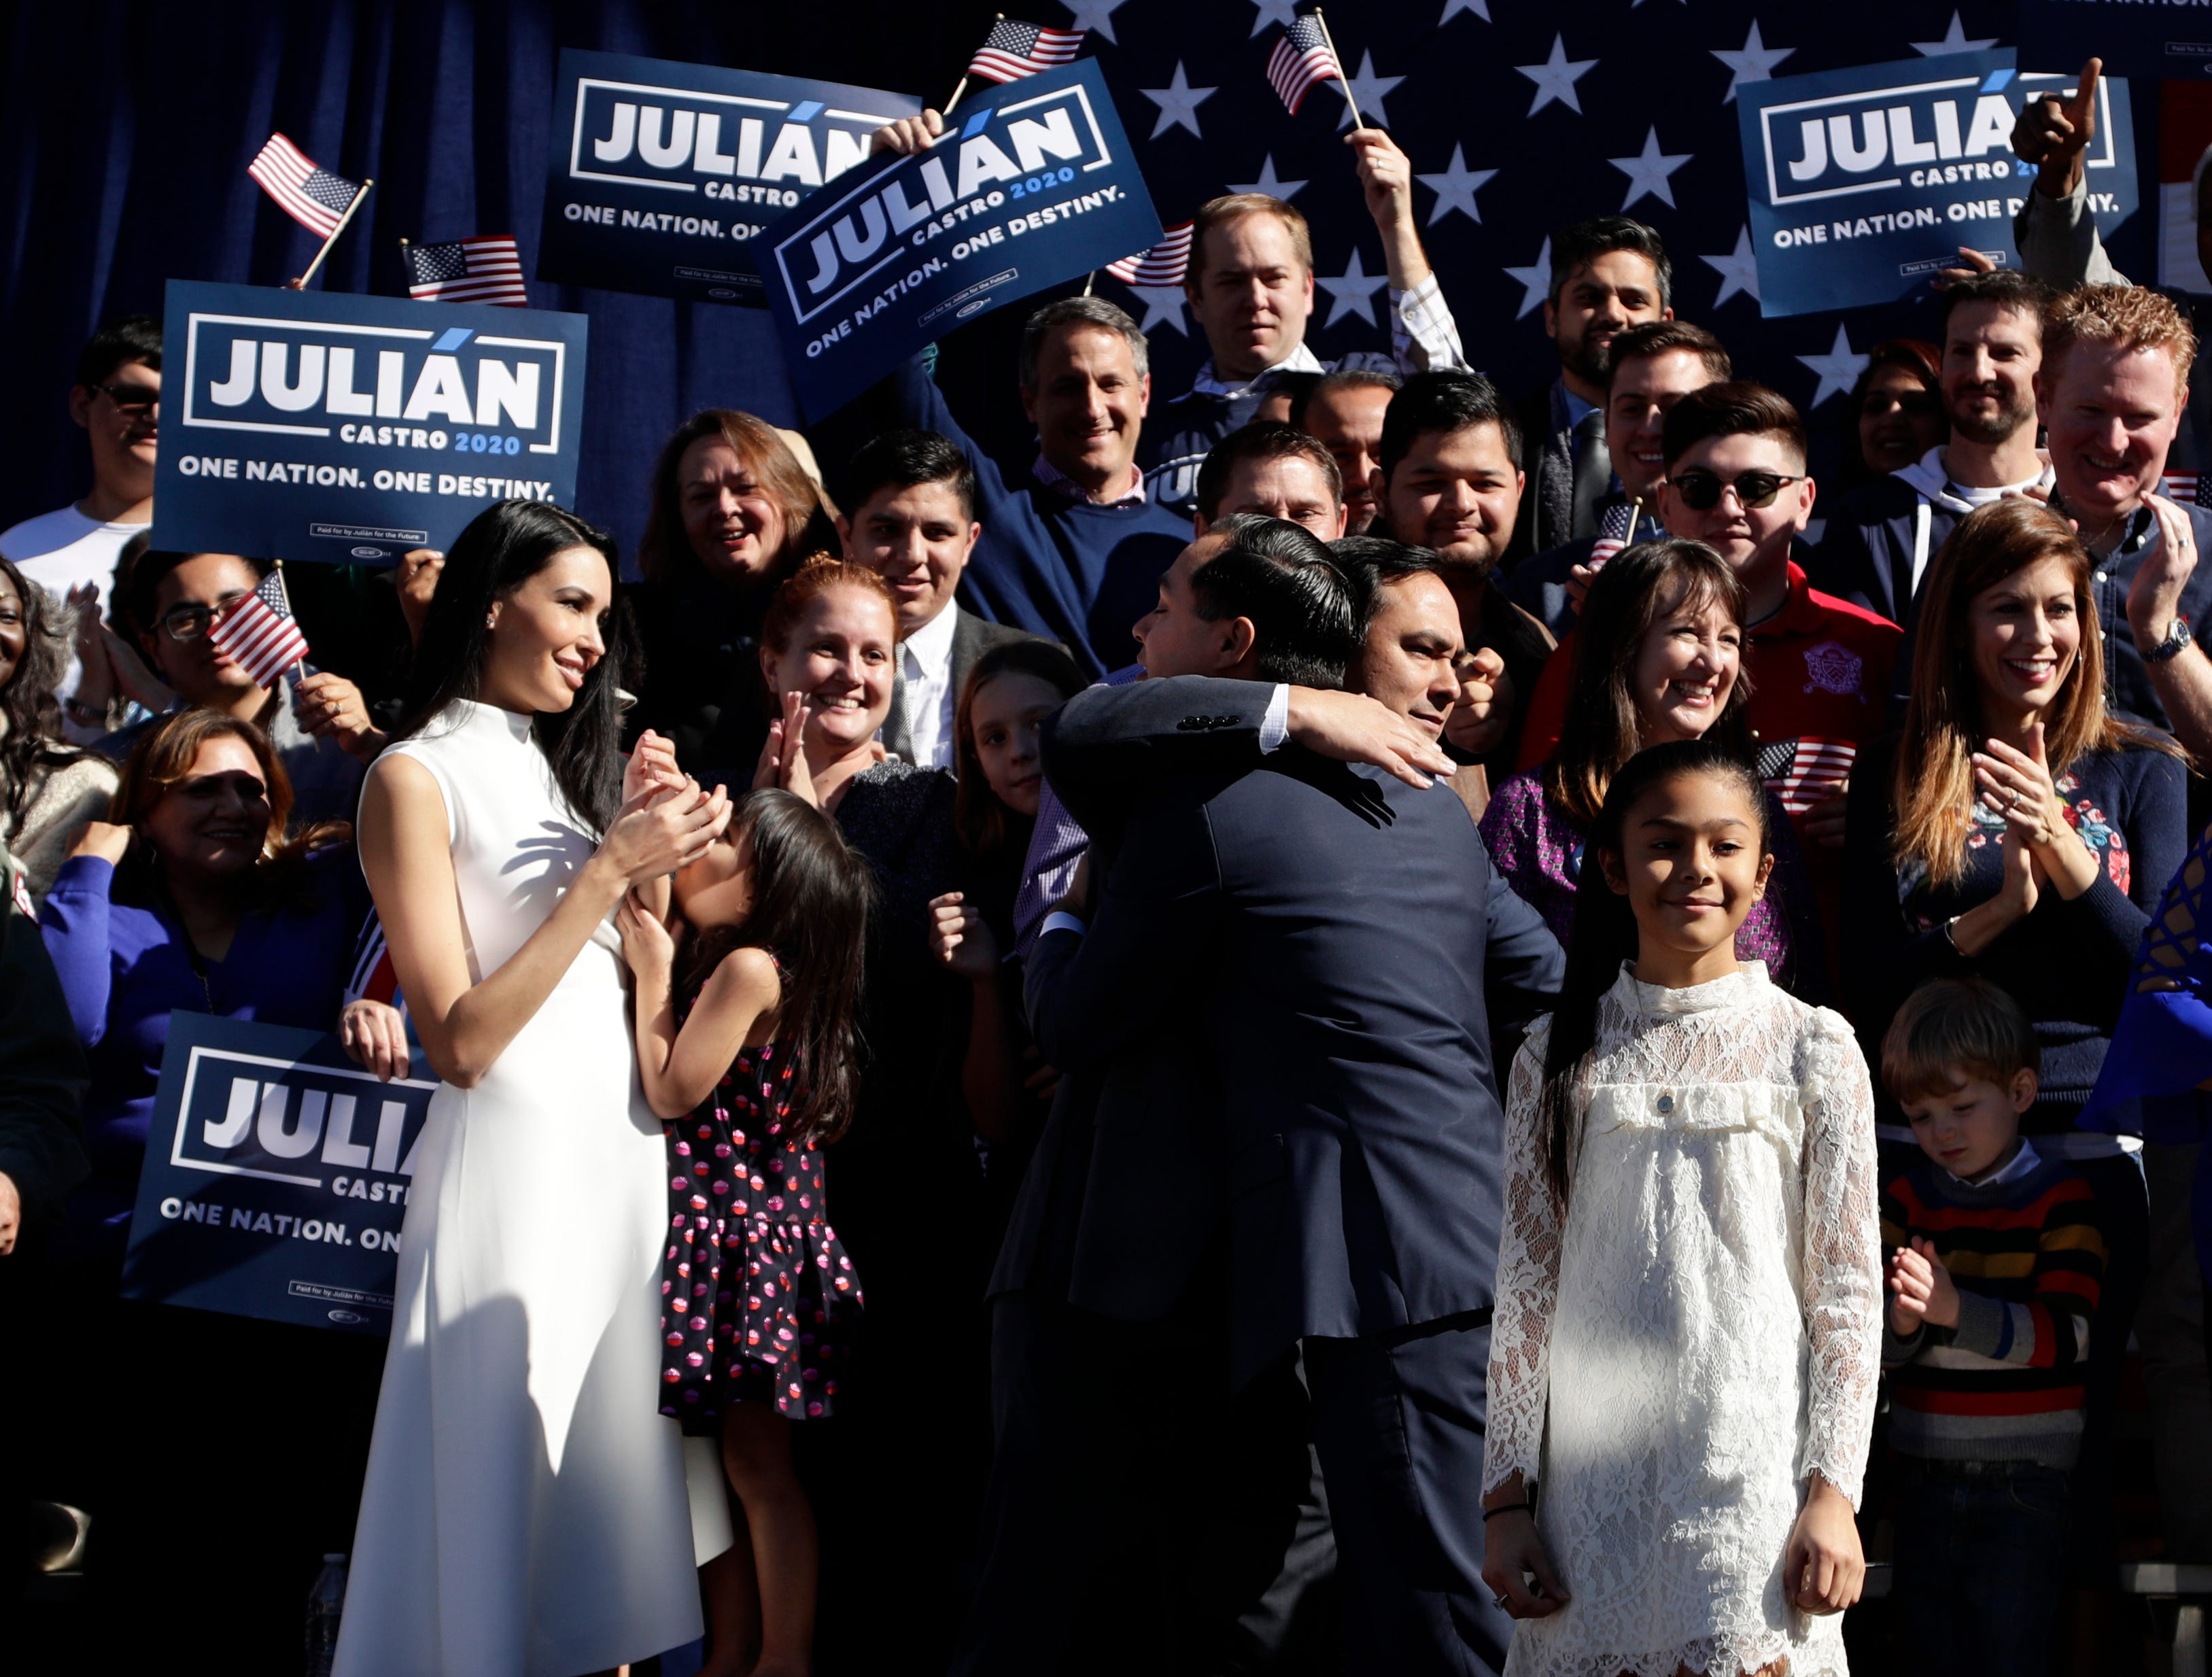 Julian Castro, center right, is embraced by his twin brother U.S. Rep. Joaquin Castro (D-San Antonio), center left, during an event where Julian Castro announced his decision to seek the 2020 Democratic presidential nomination.